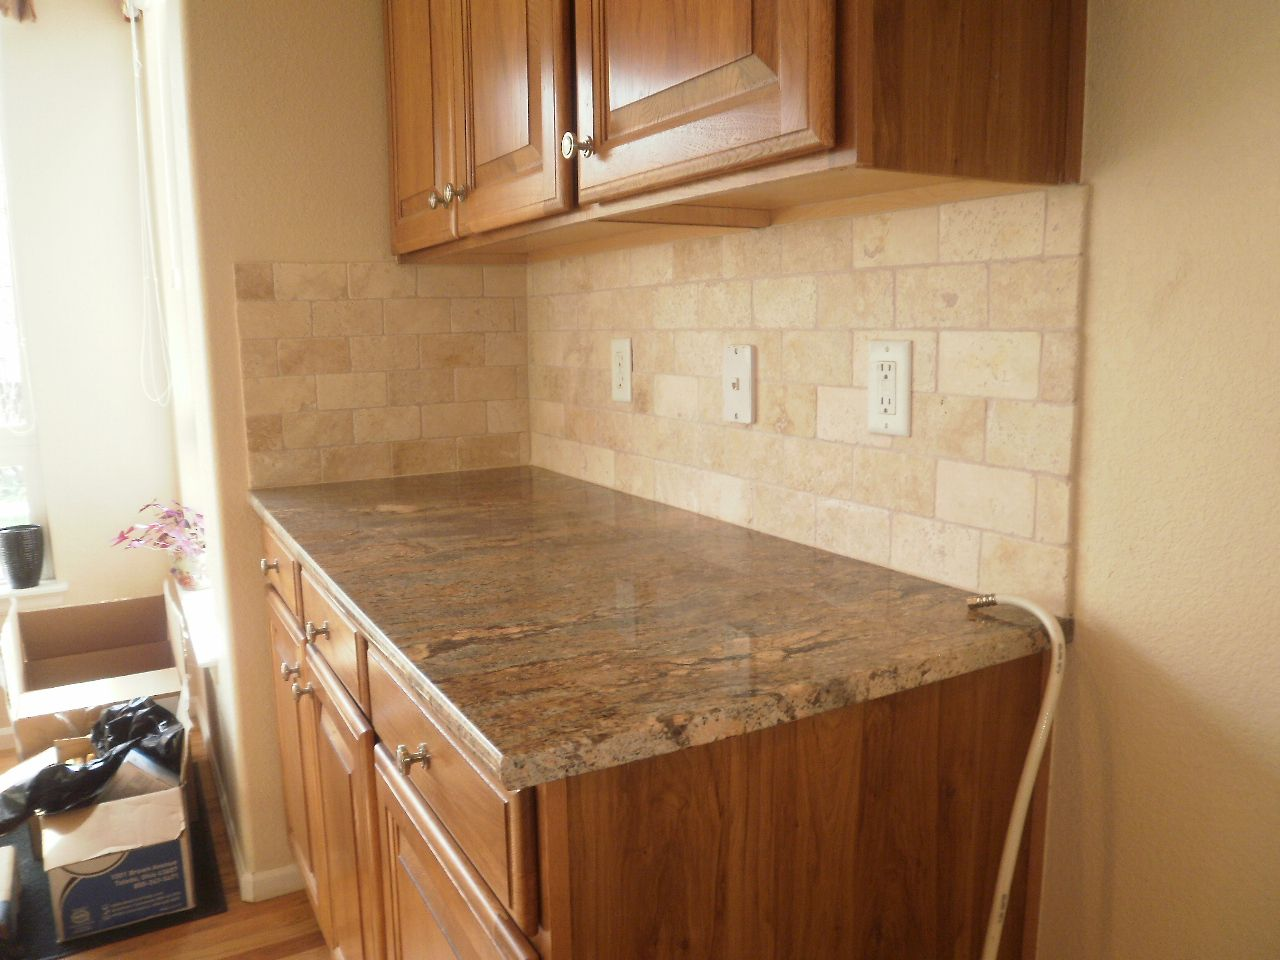 Travertine tile patterns for kitchens range for Travertine tile designs